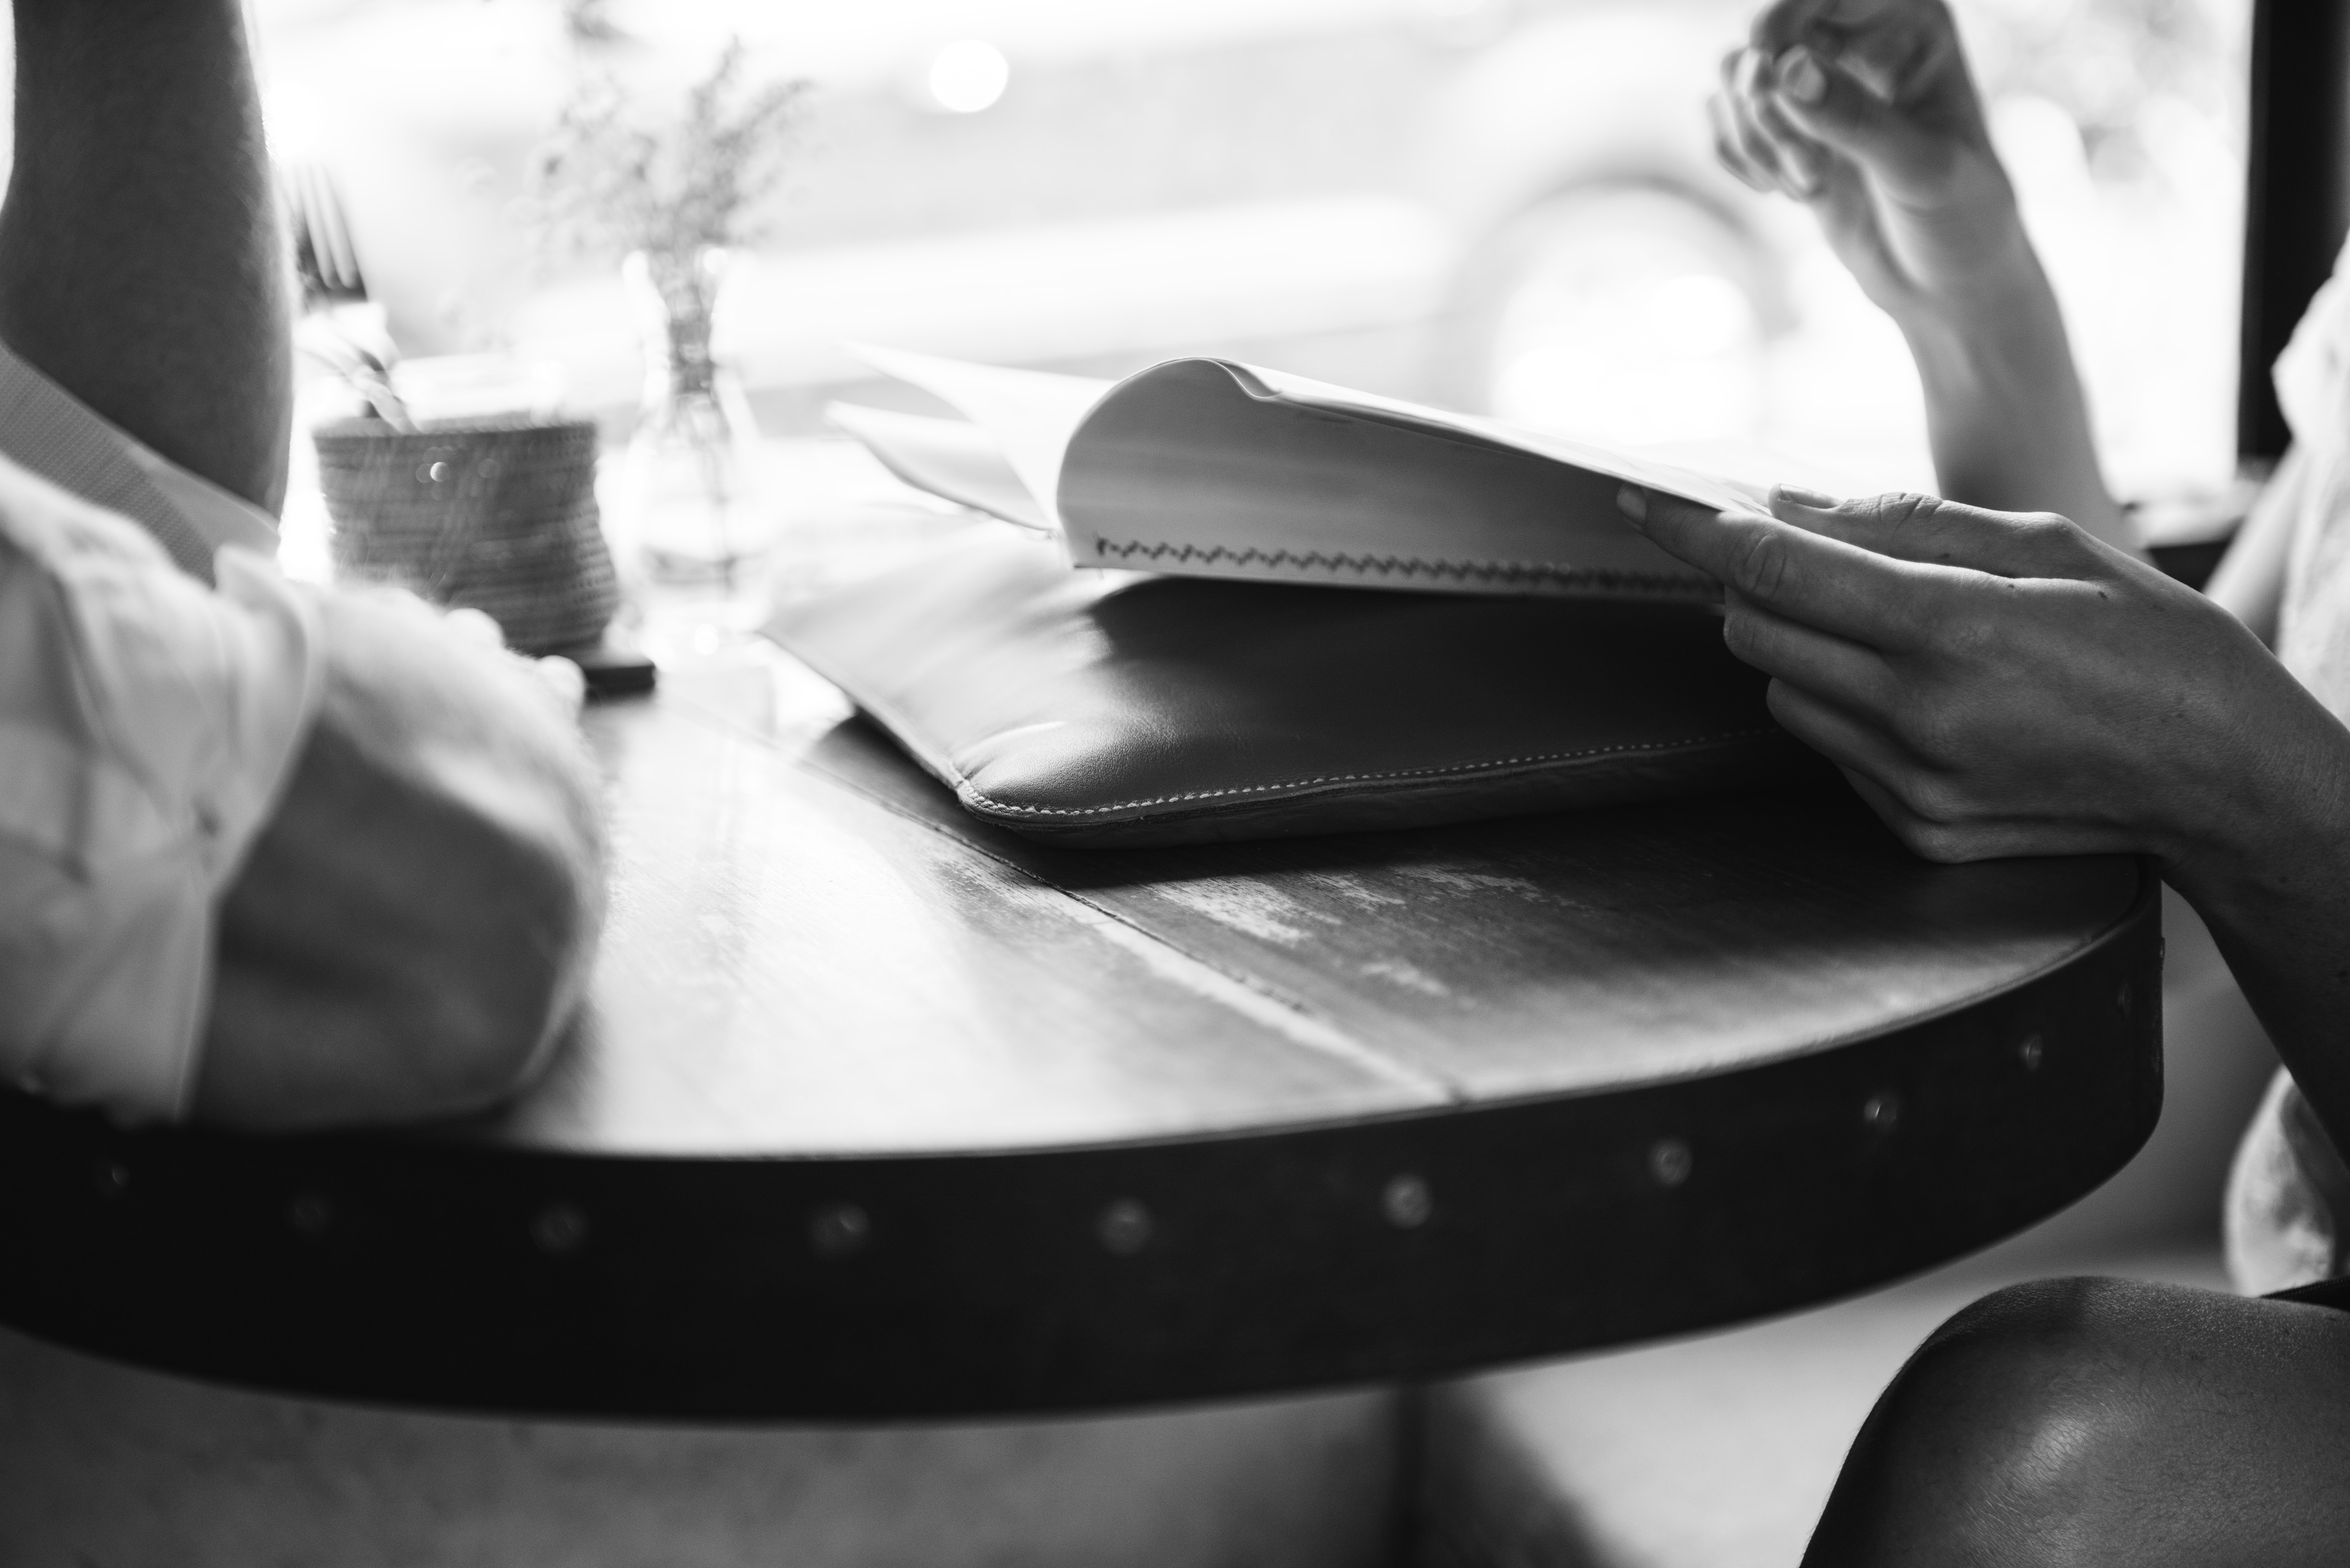 People sit at a cafe table reading and catching up